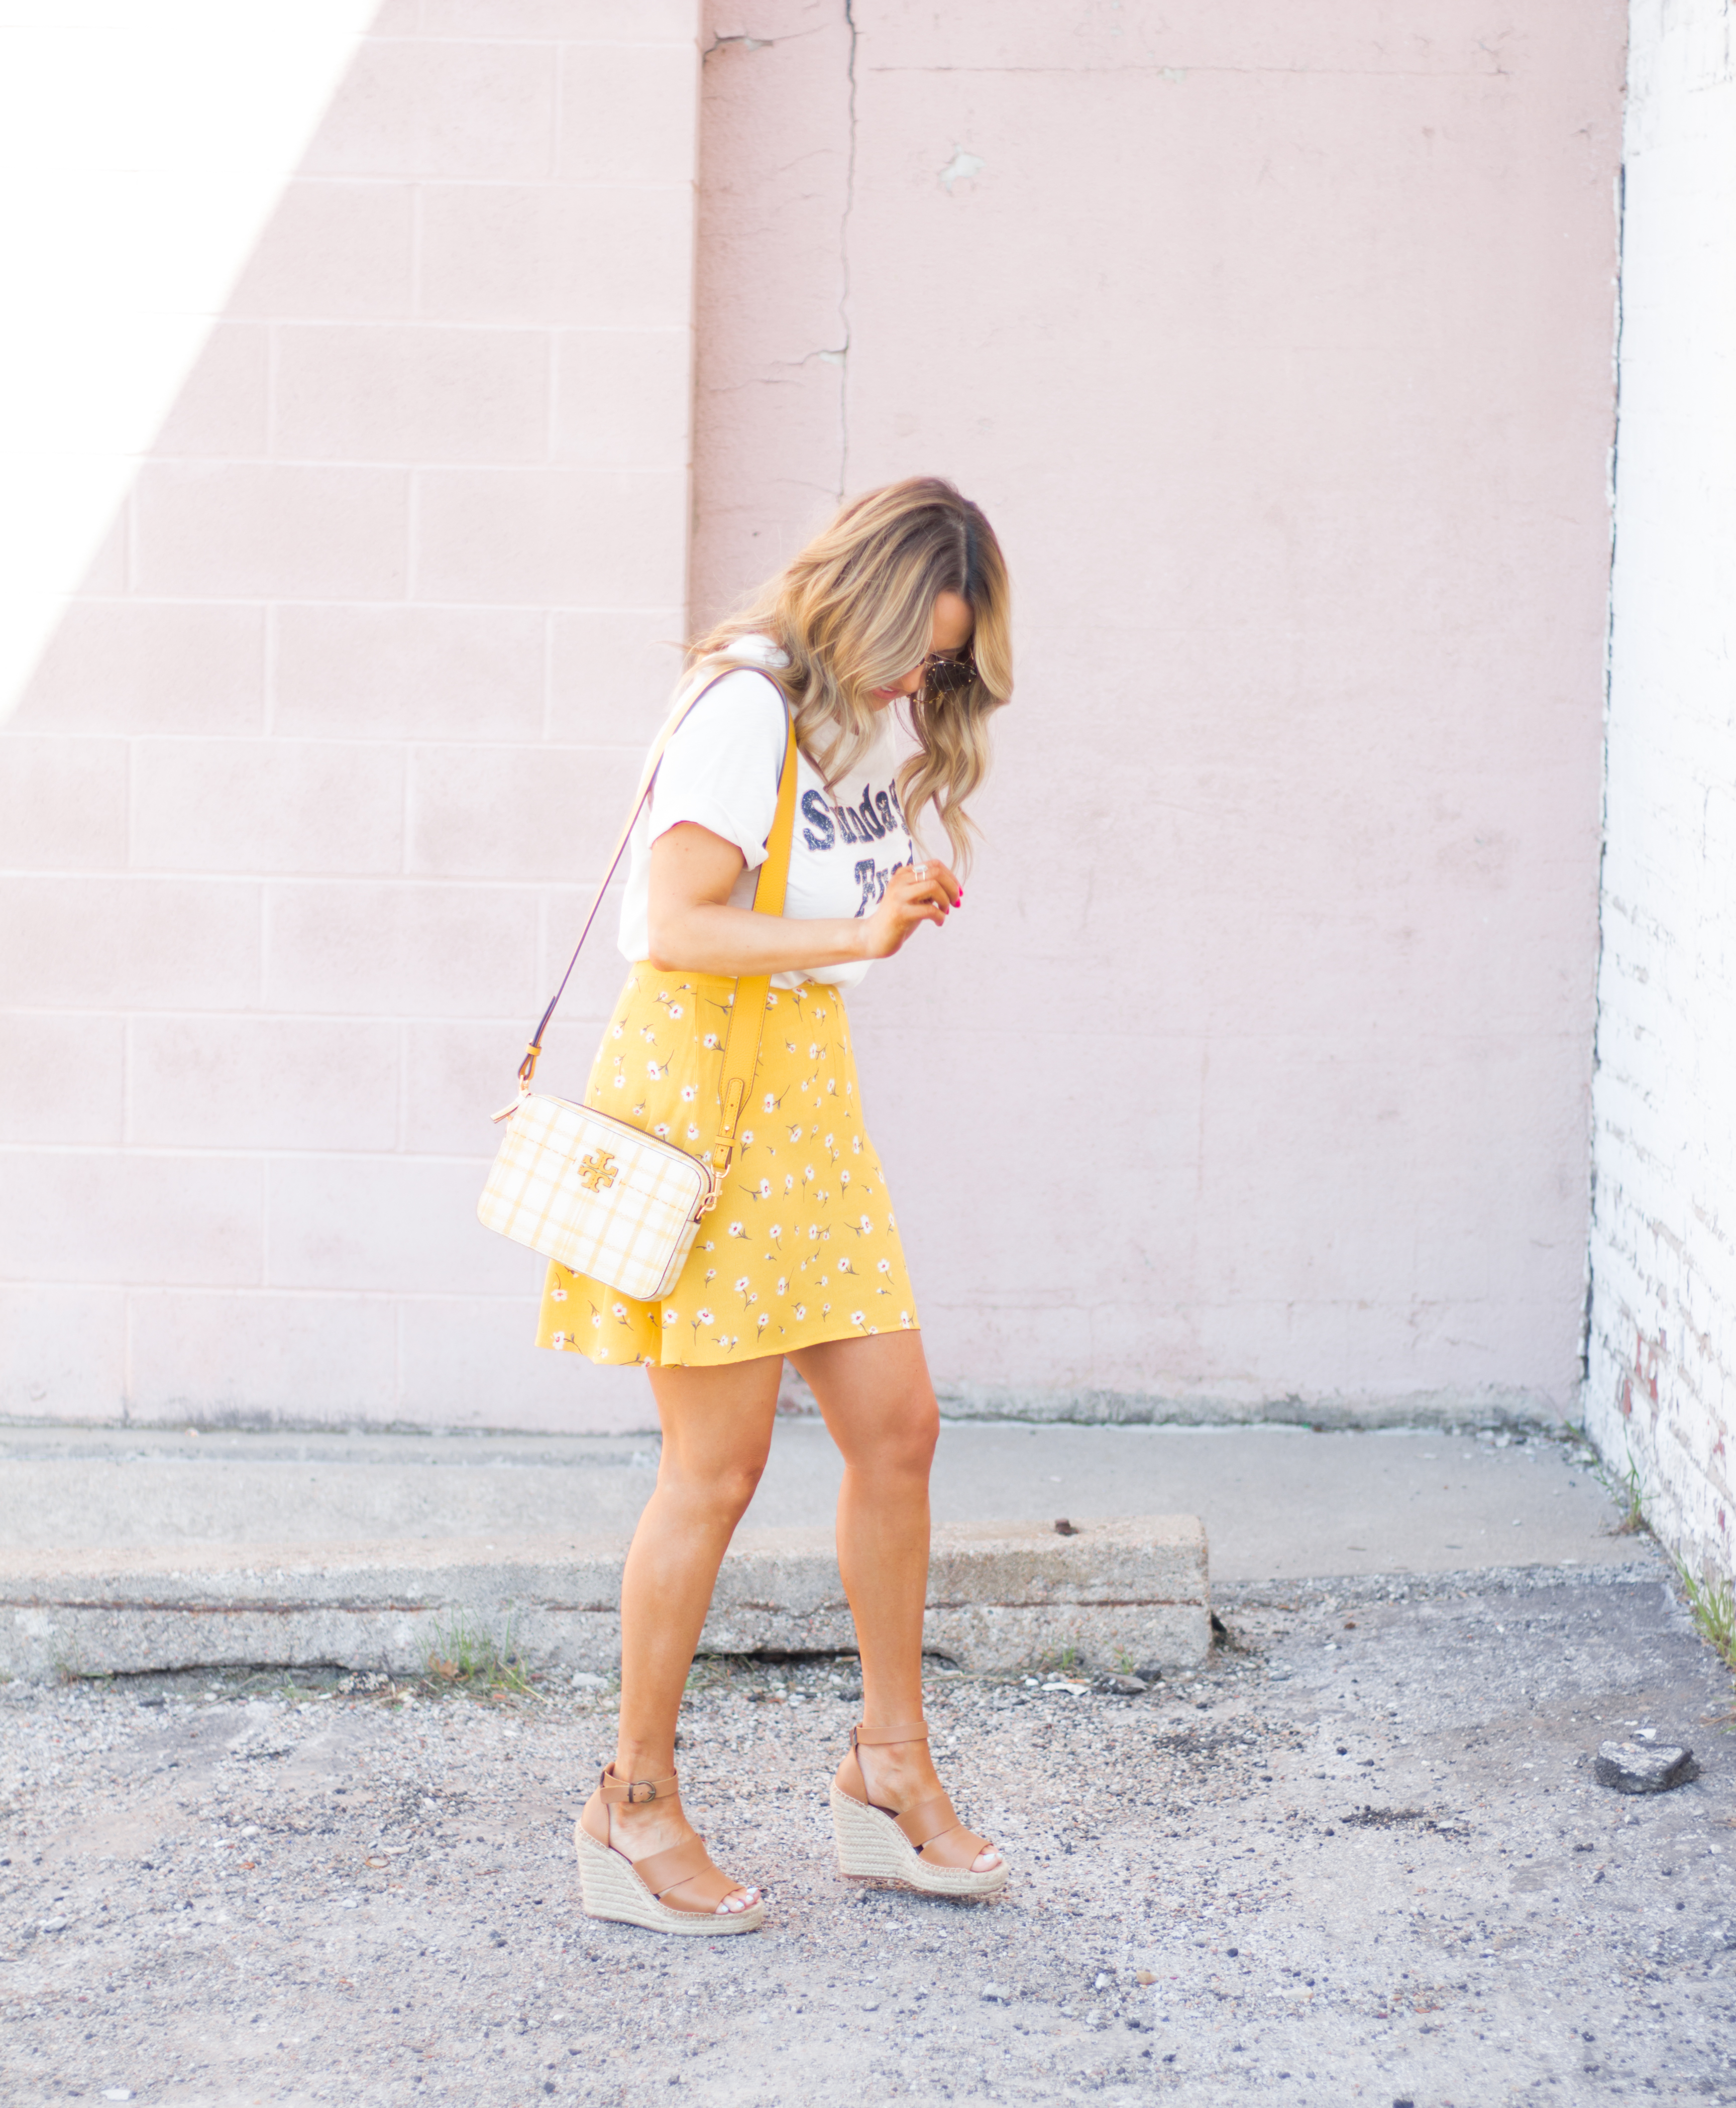 Sunday Funday-Graphic Tee-Floral Skirt-Mini Skirt-Spring Fashion-Spring Style-Tory Burch Purse-Quay Sunglasses-Tan Wedges-Espadrilles-Yellow-Colorful Style-Sabby Style-Women's Fashion-Omaha Blog-Omaha Blogger-10